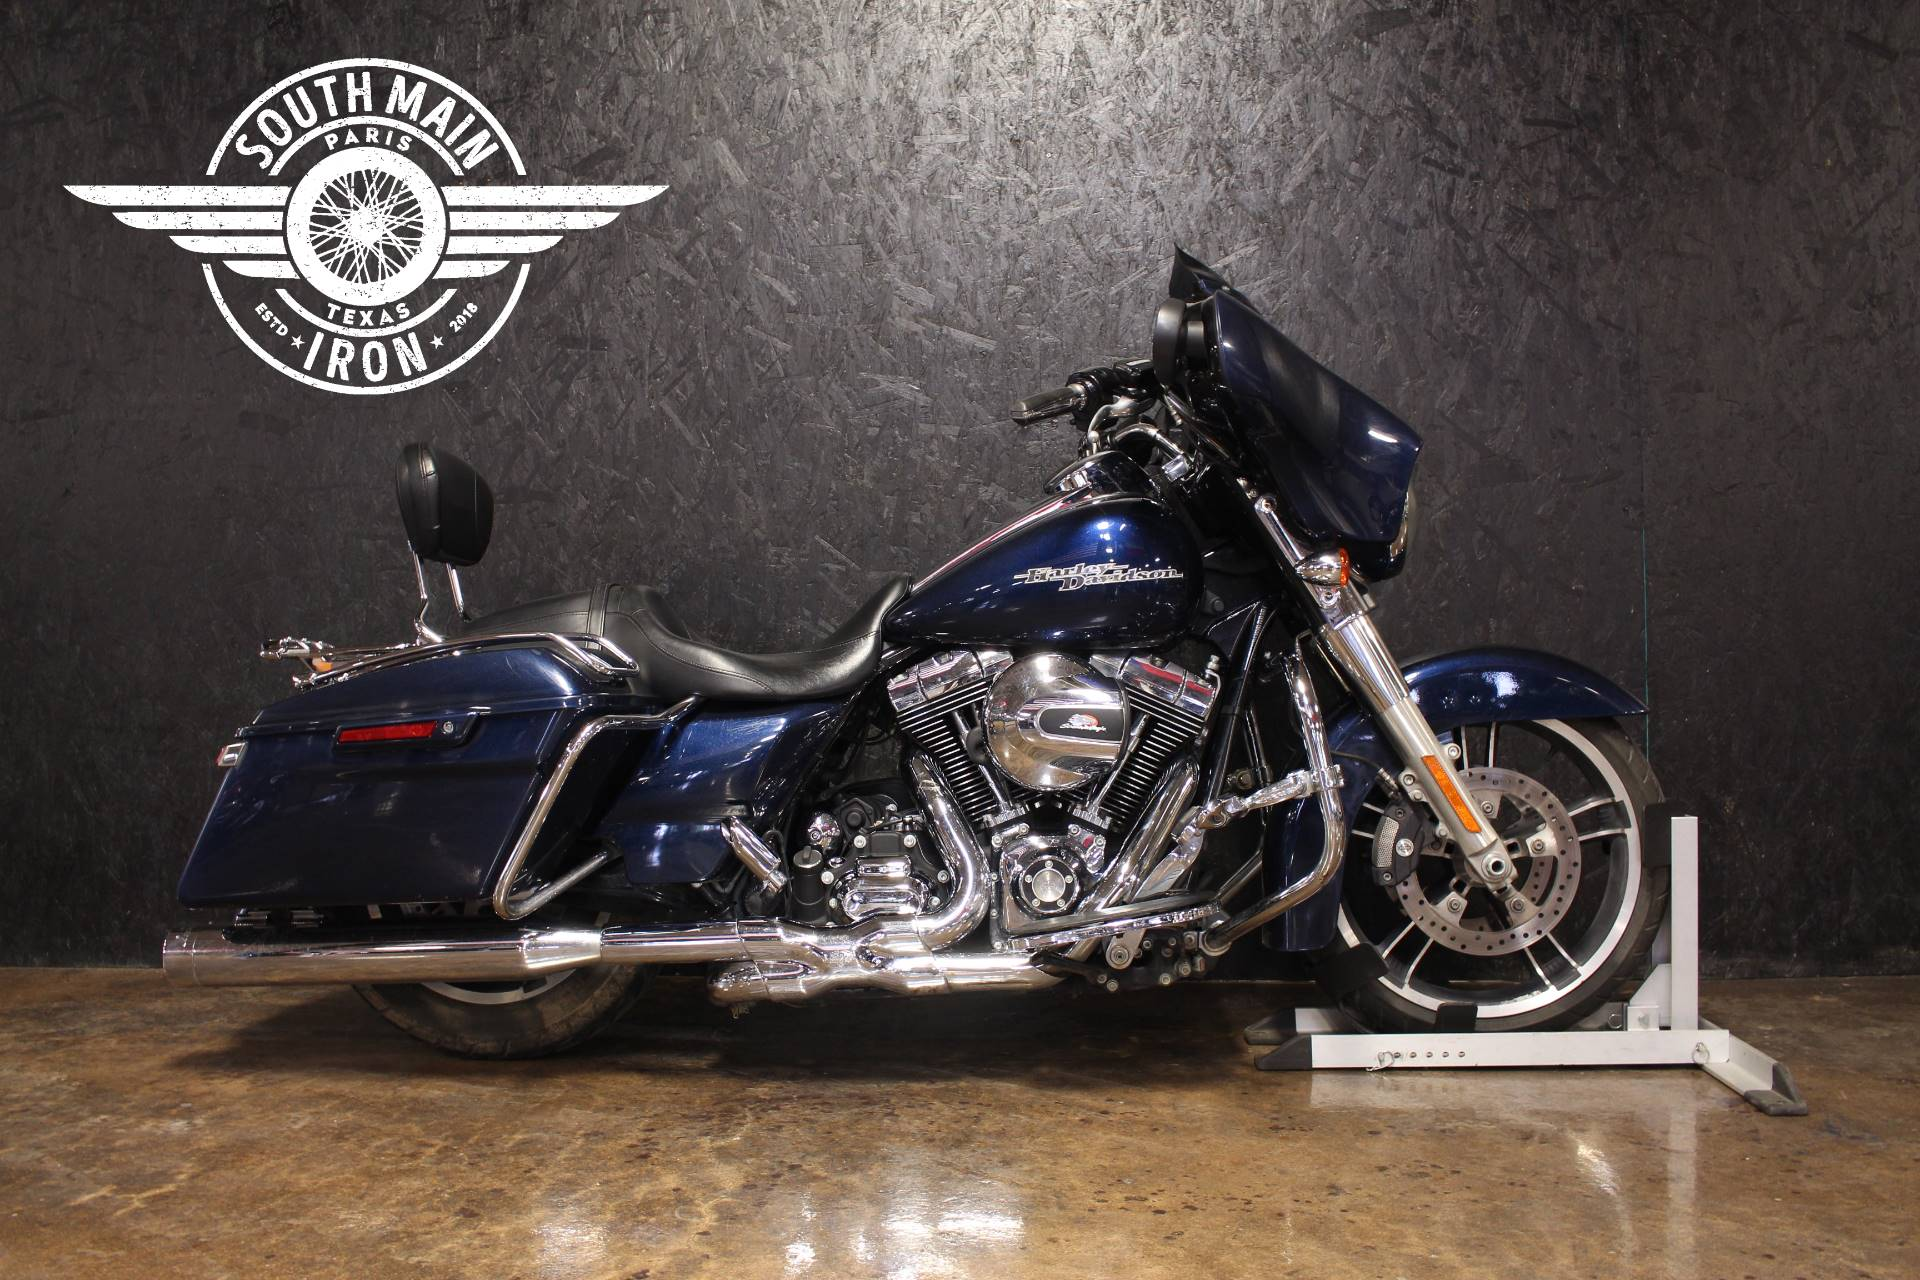 2014 Harley-Davidson Street Glide® in Paris, Texas - Photo 1